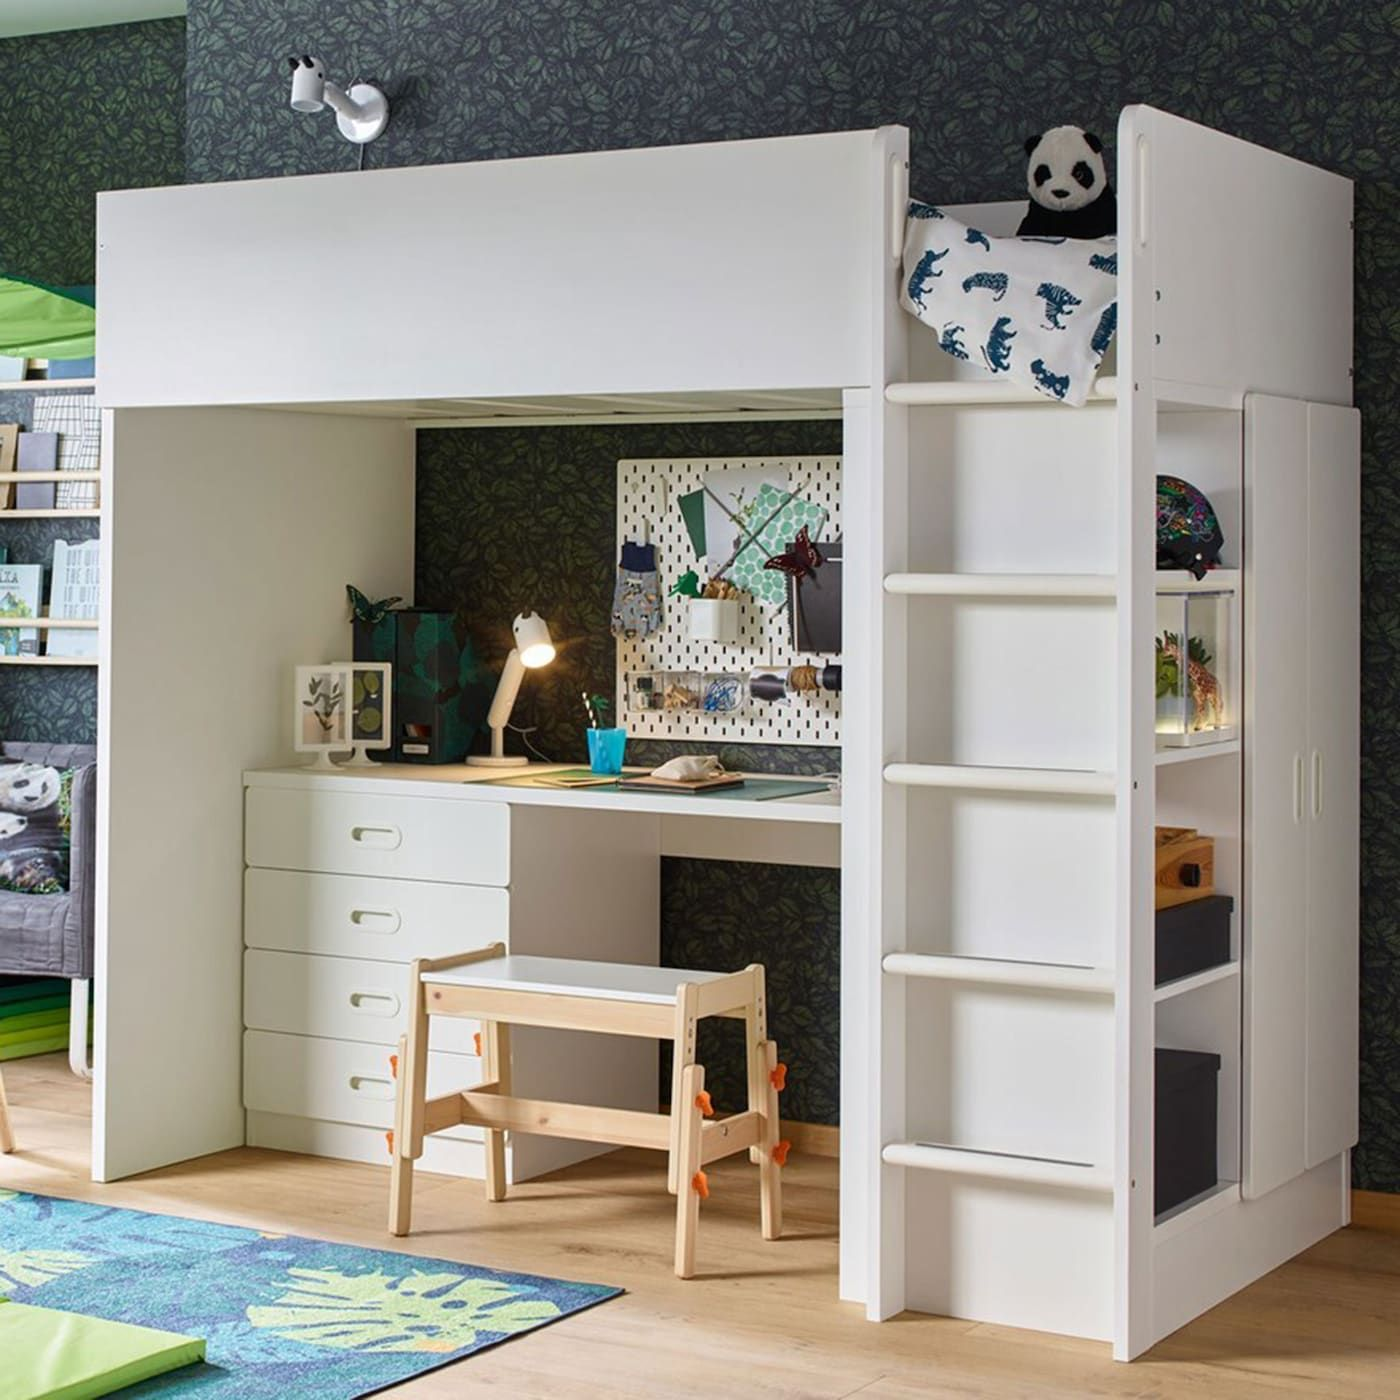 For kids with wild ideas stuva loft bed adult loft bed